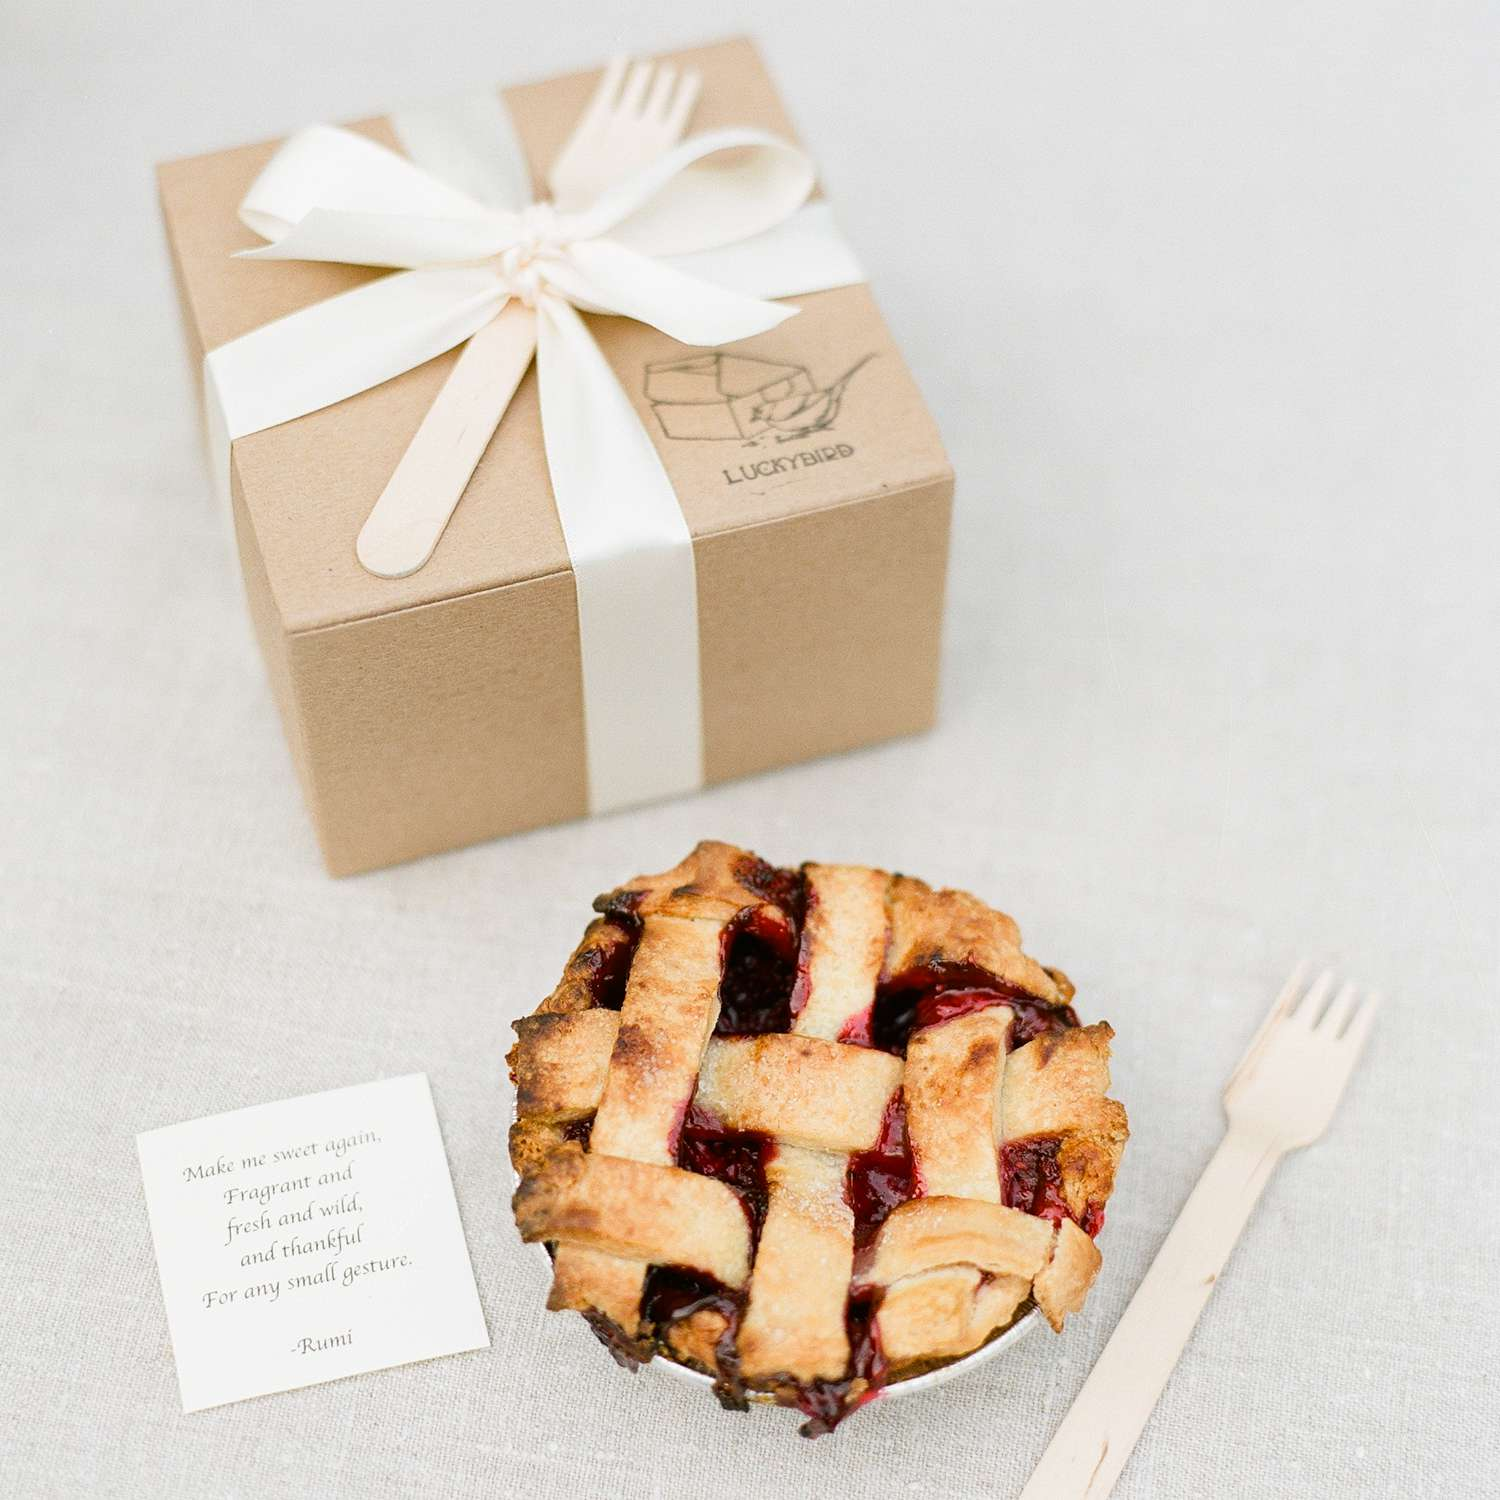 Boxed mini pie wedding favor with thank you note